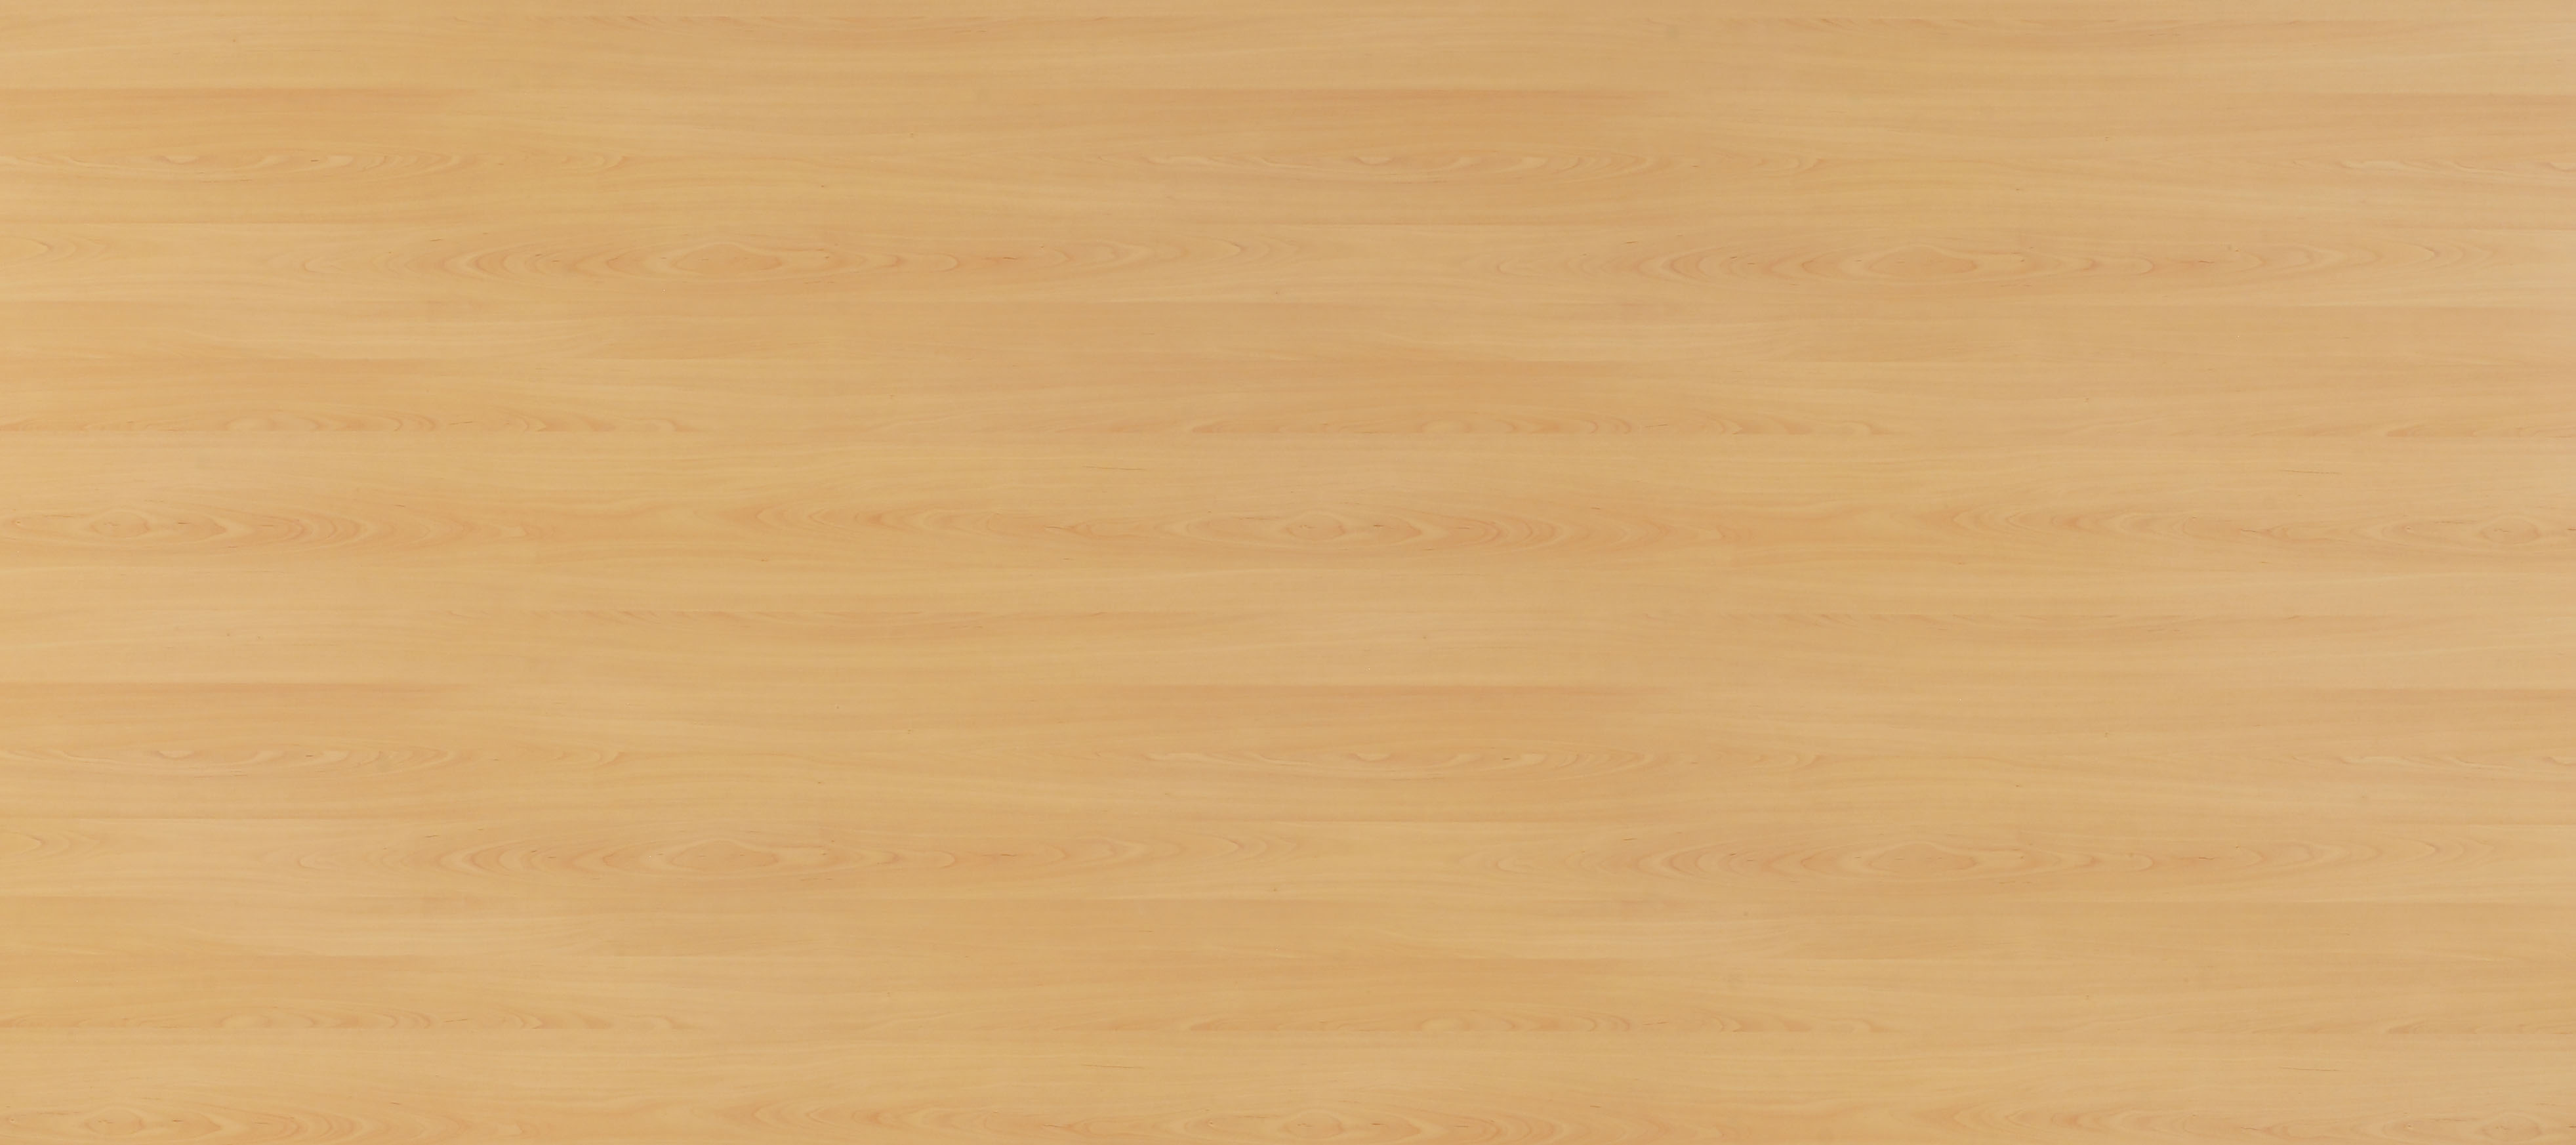 Texture Wood Free Photo Background